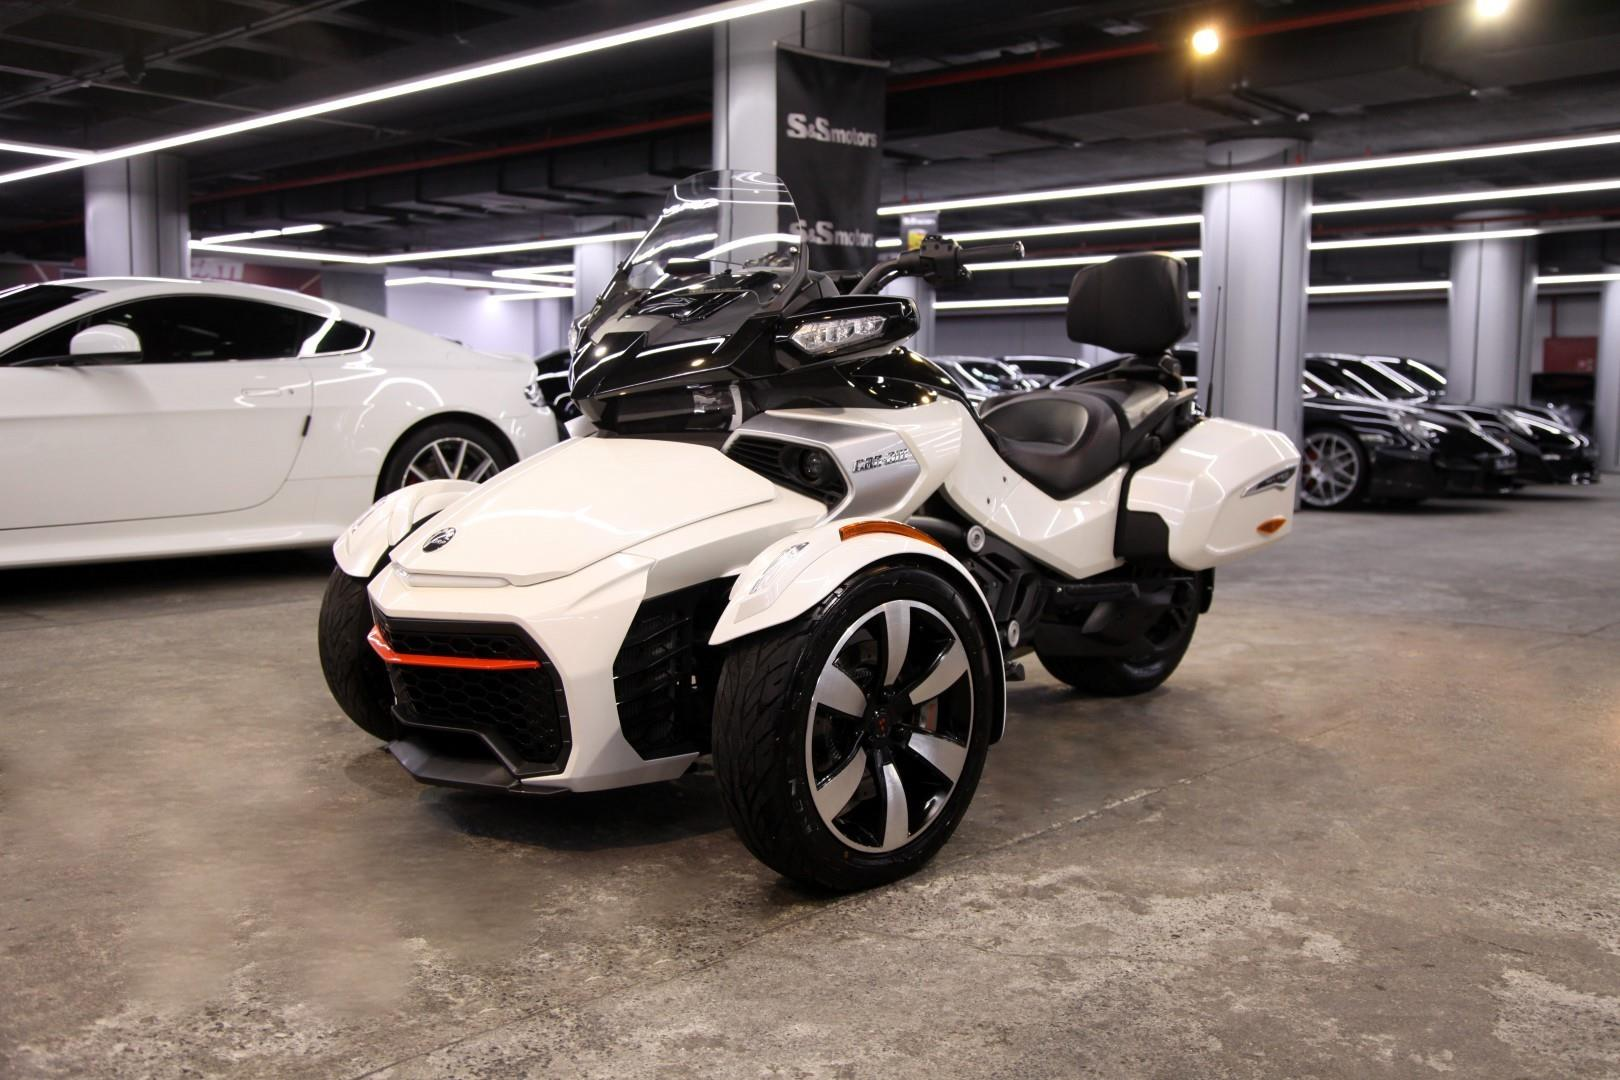 Brp Can Am >> Bombardier Brp Can Am Spyder F3 T